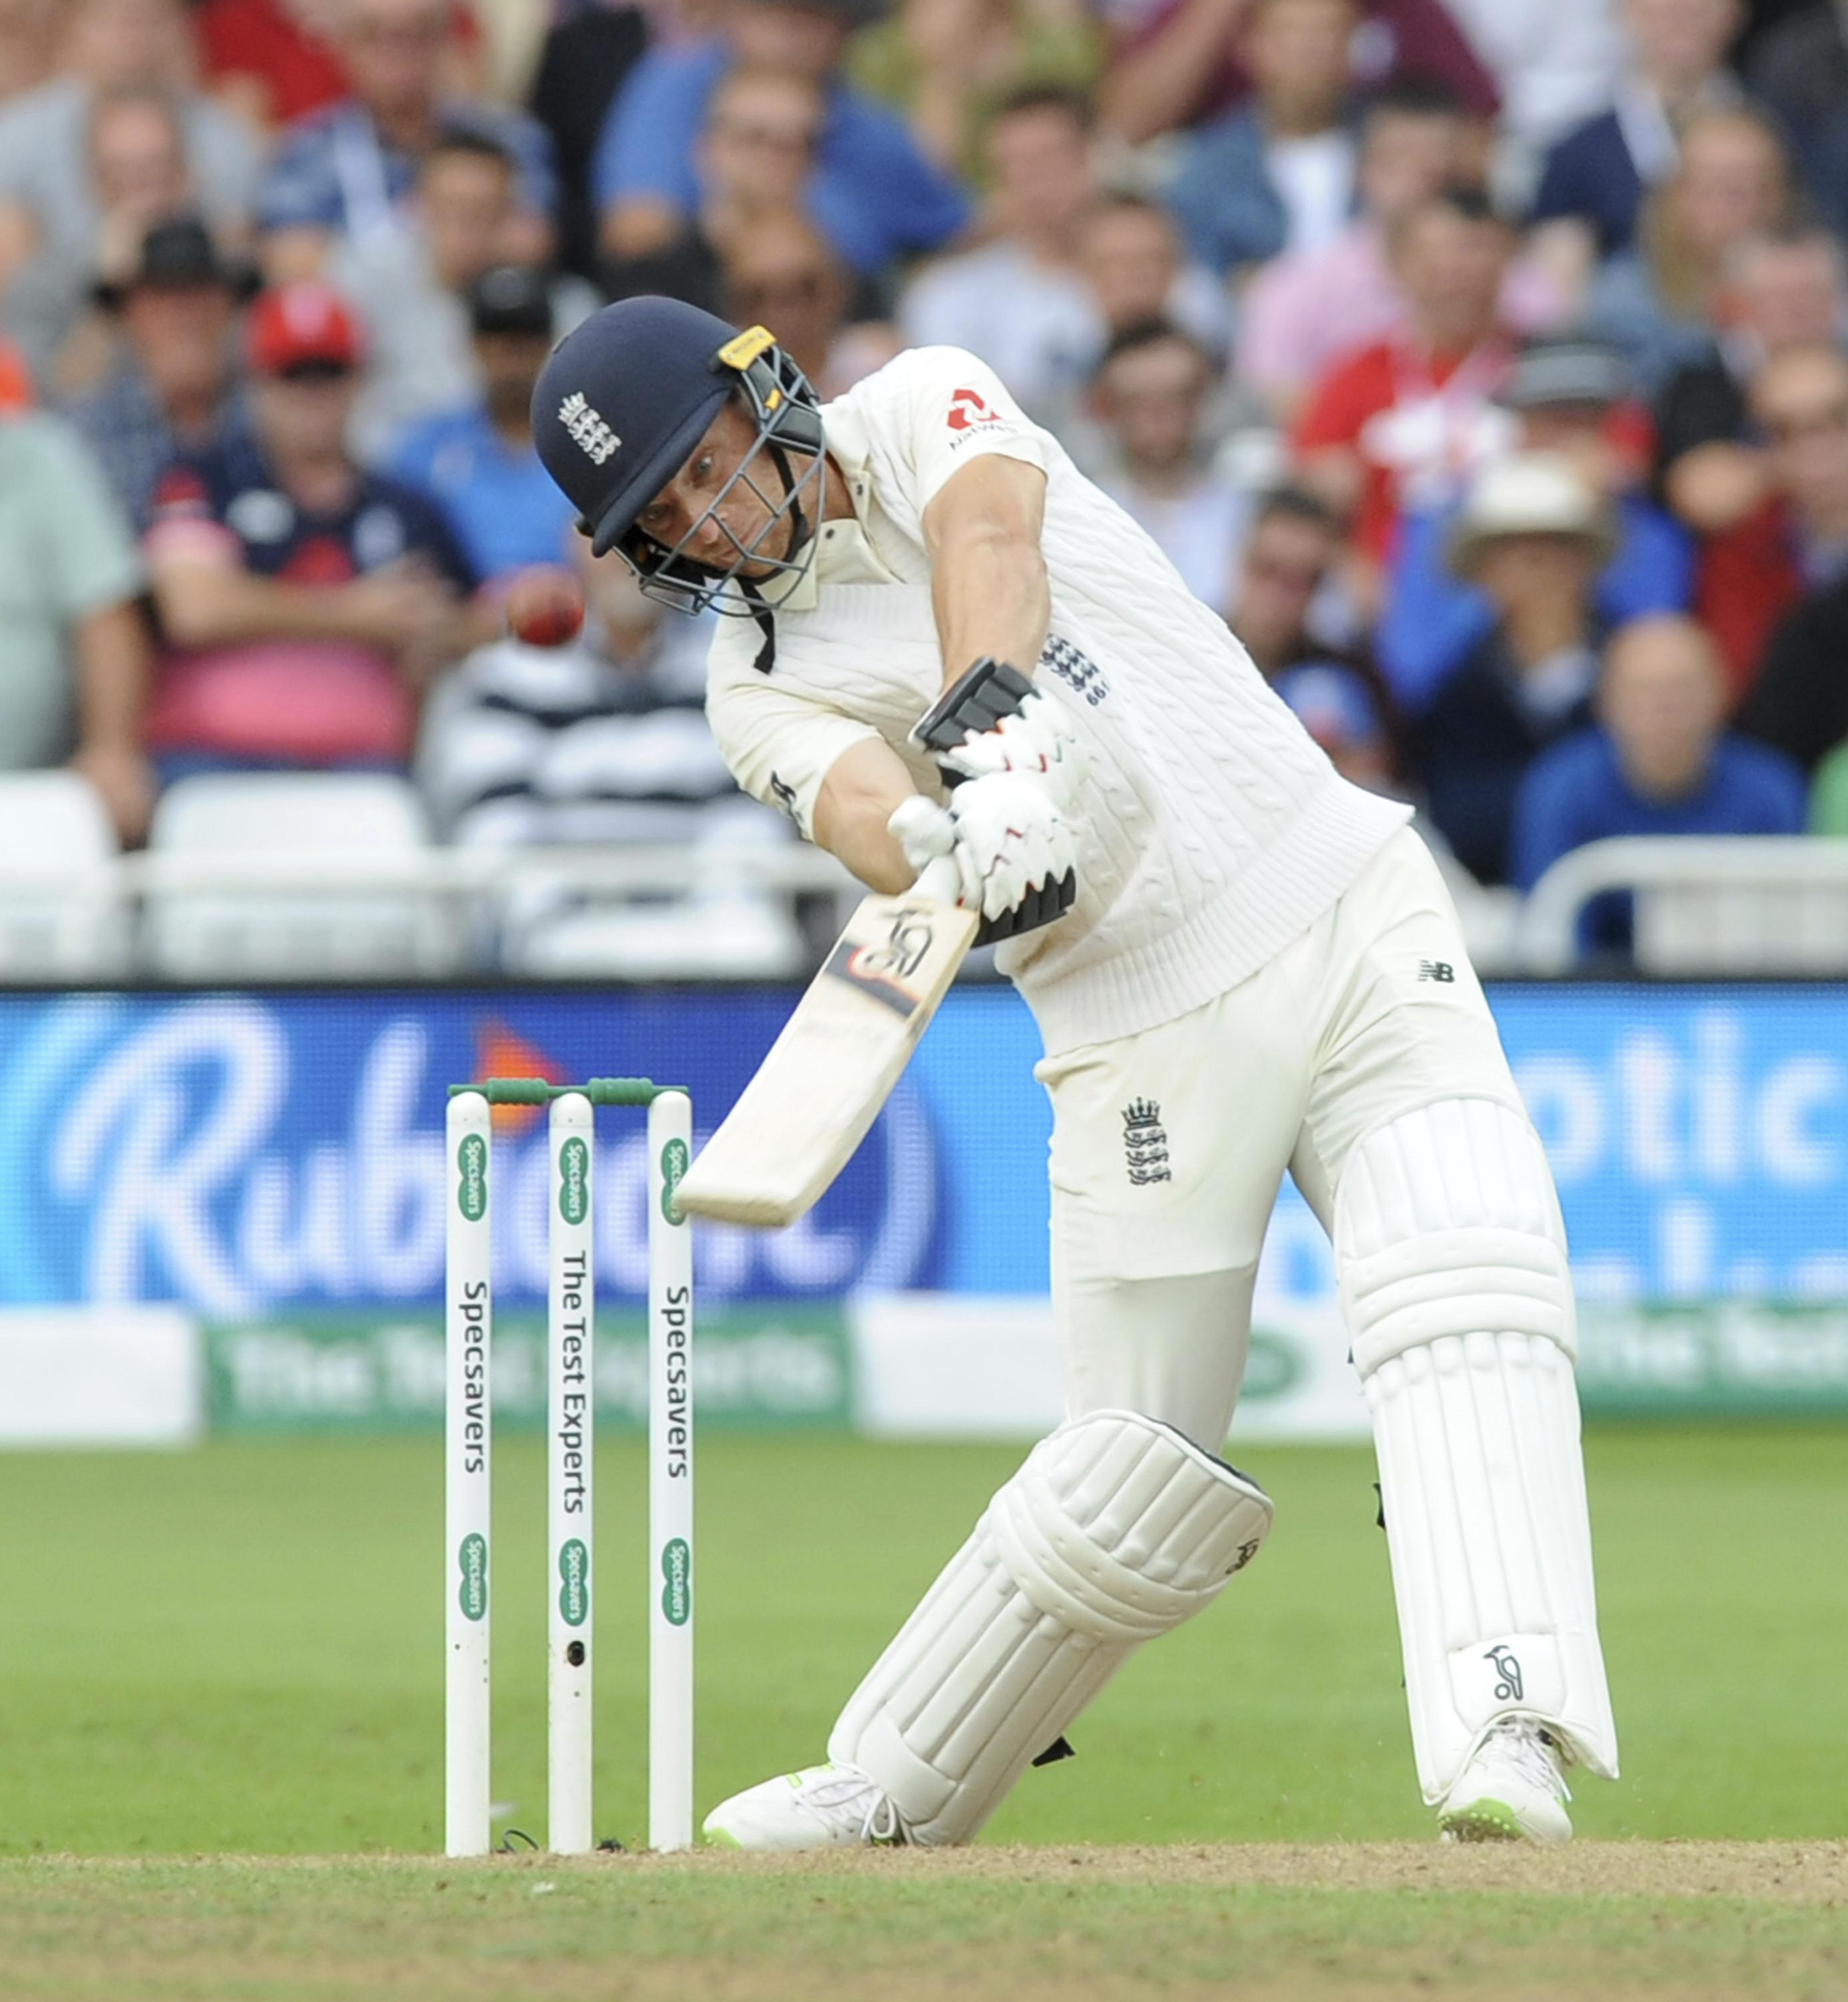 Jos Buttler reached 1,000 Test runs during his knock